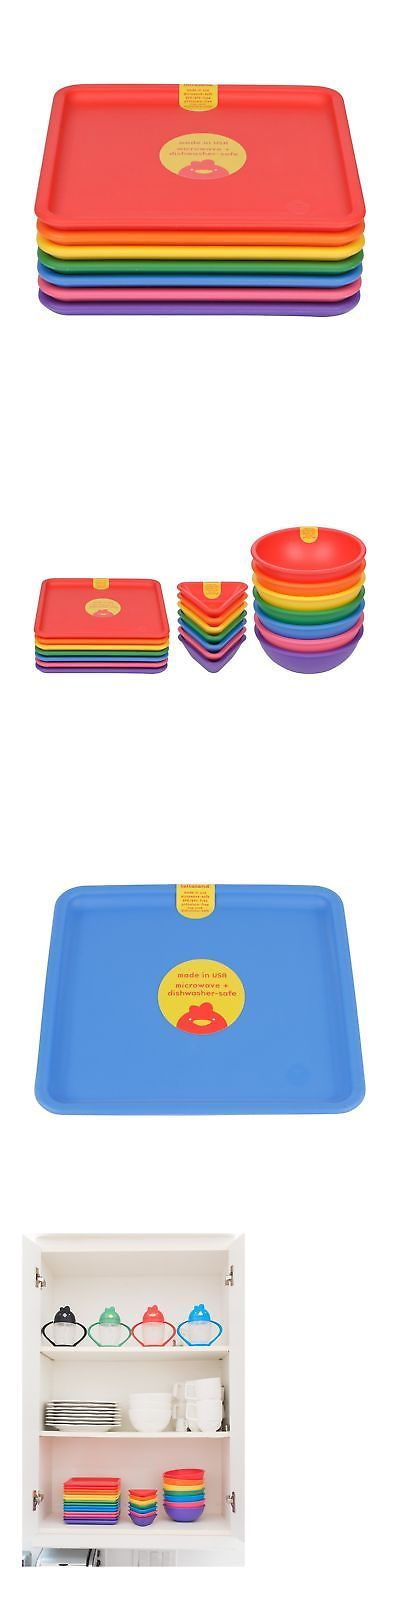 Feeding Sets 117386: Lollaland Plastic Plates For Kids (7-Count Rainbow Assorted): Made In Usa, Mi... -> BUY IT NOW ONLY: $47.69 on eBay!